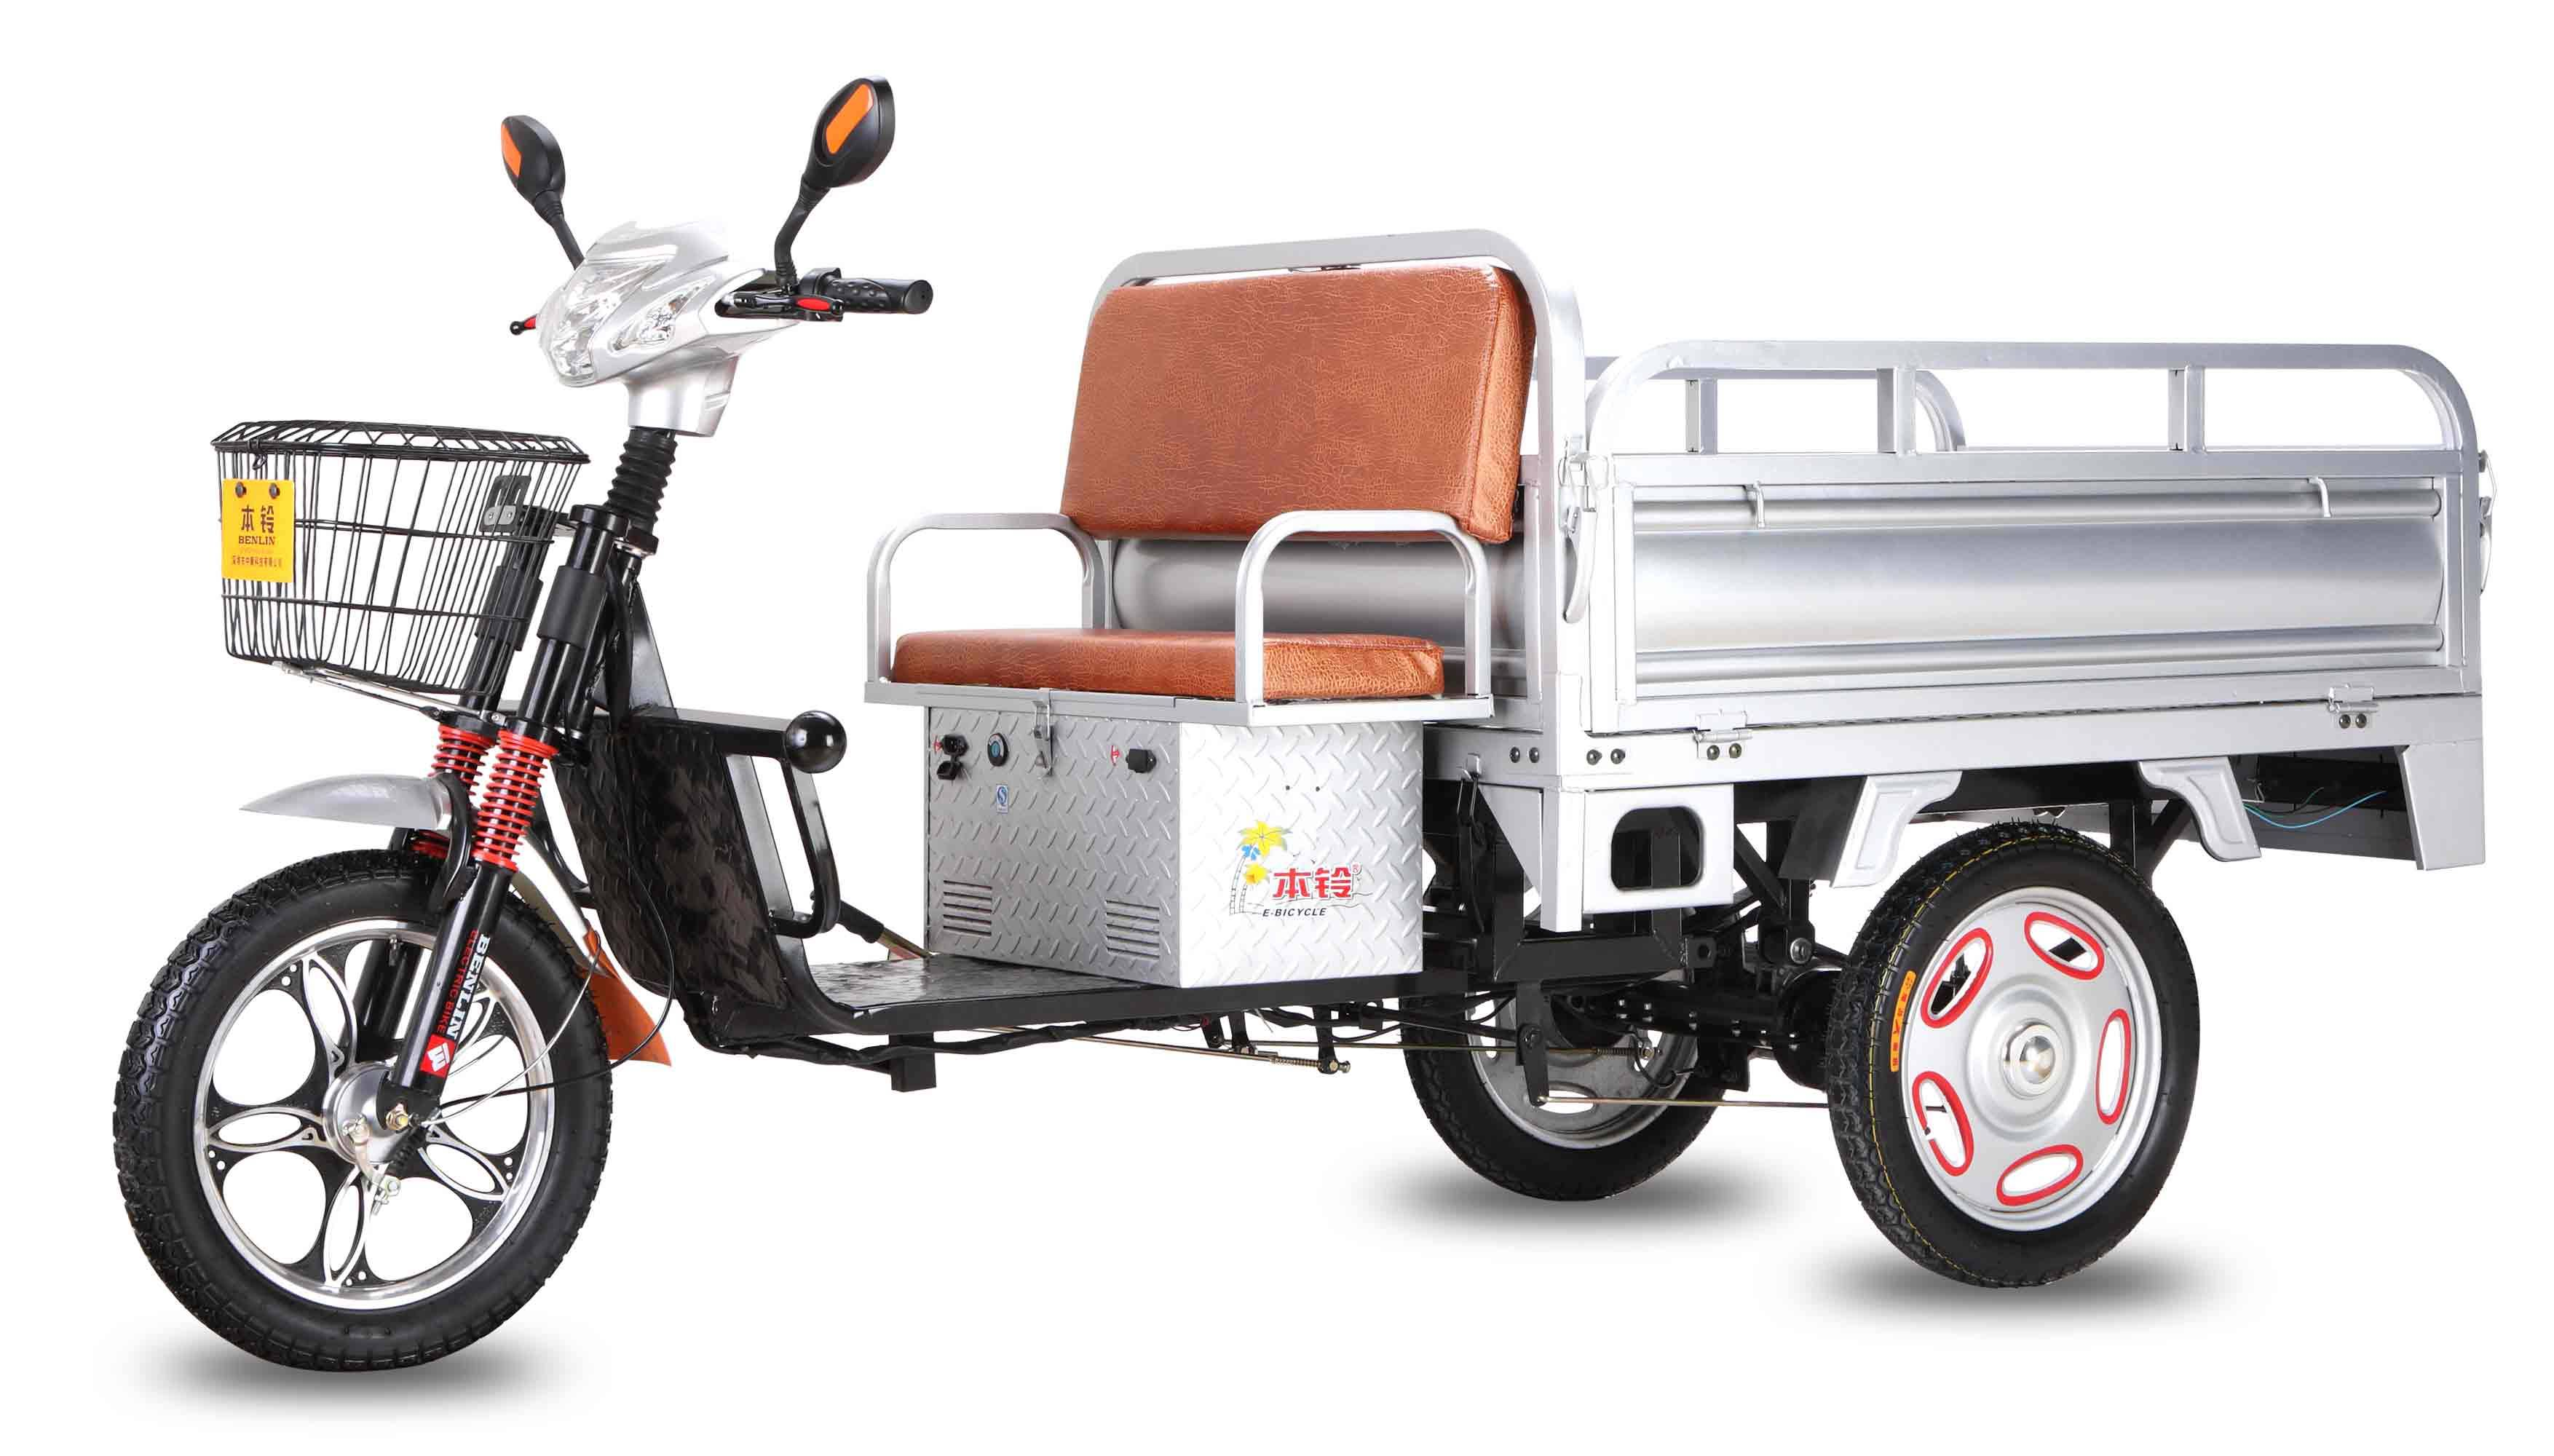 48V500W new electric tricycle three-wheeler scooter South Asia style